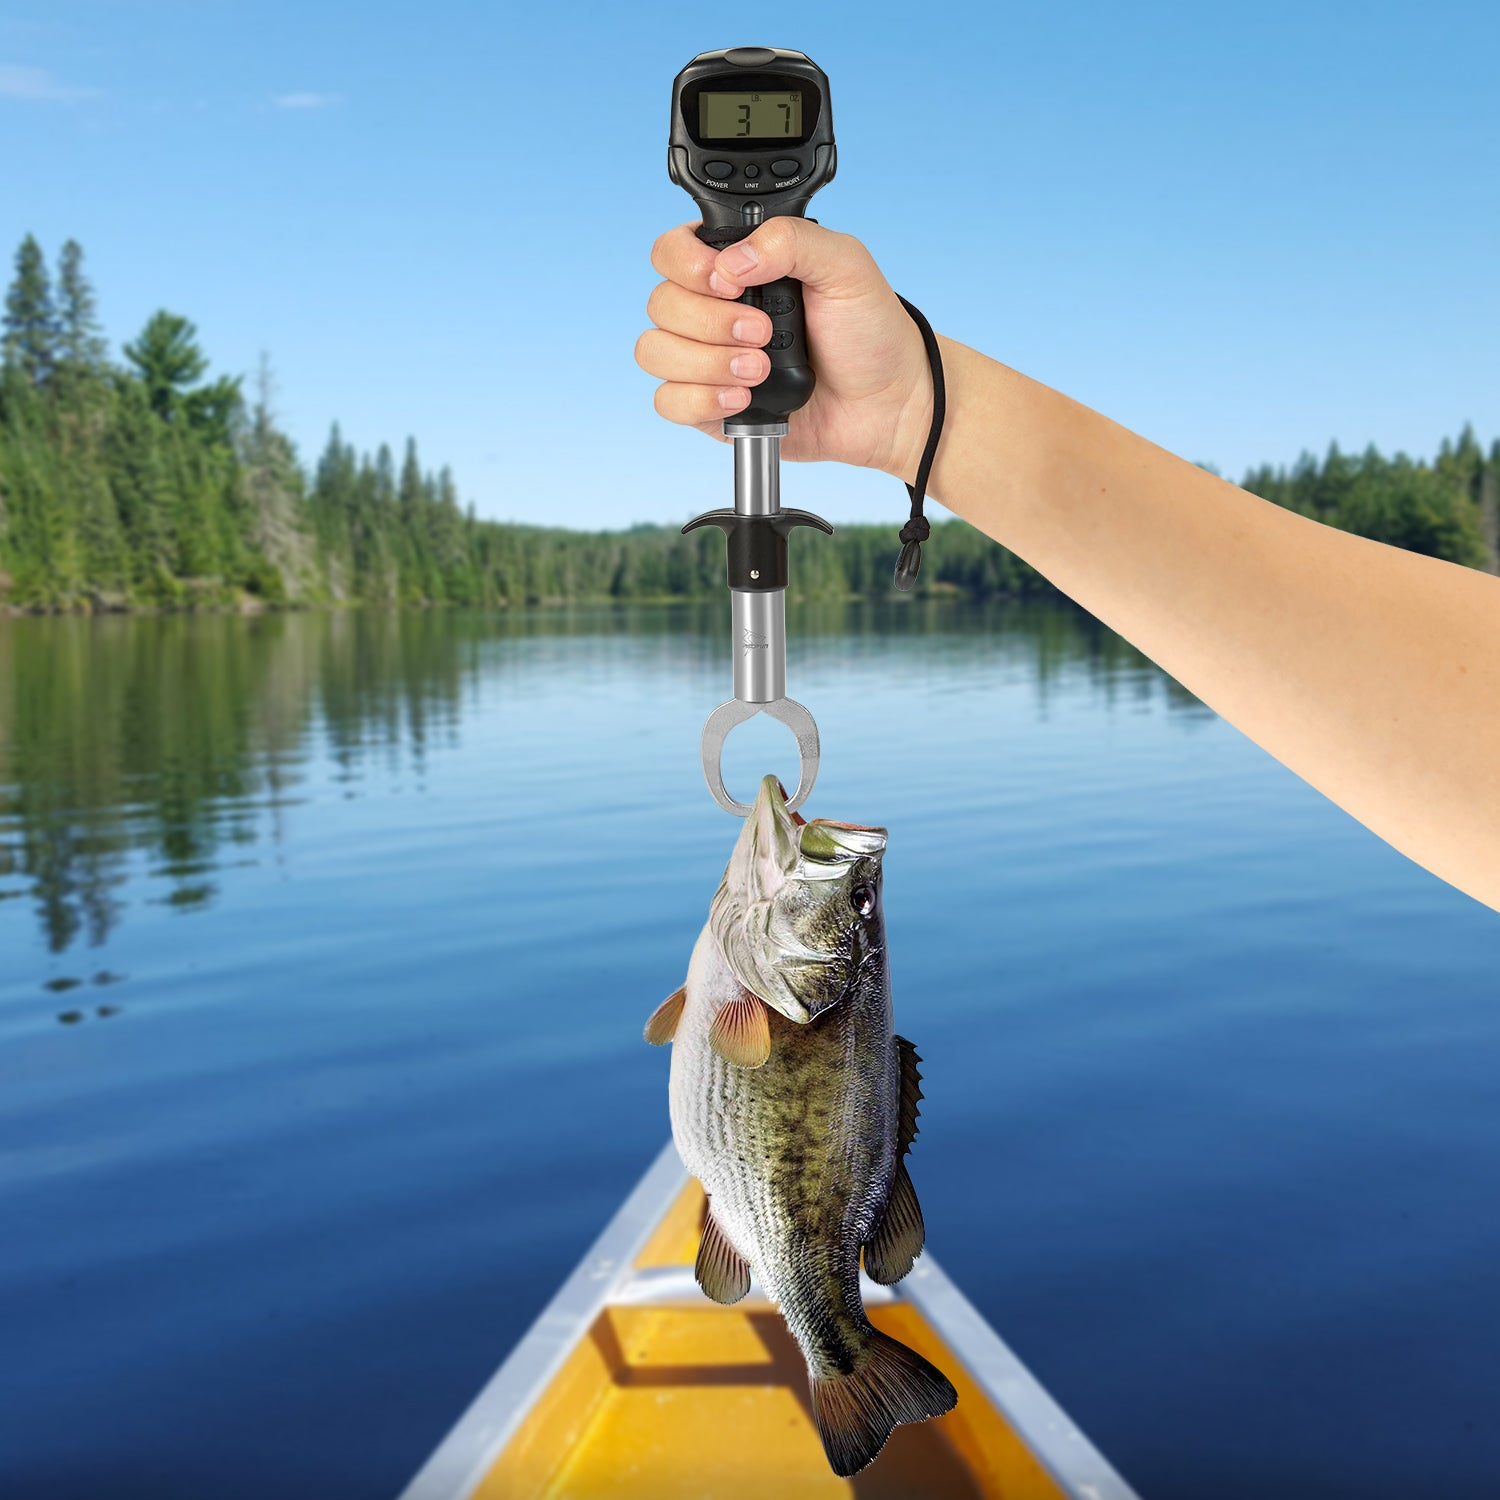 Piscifun Fish Lip Gripper with Digital Scale Waterproof Lip Grip with Electronic Digital Scale Fish Grabber Stainless Steel Clip Fish Control